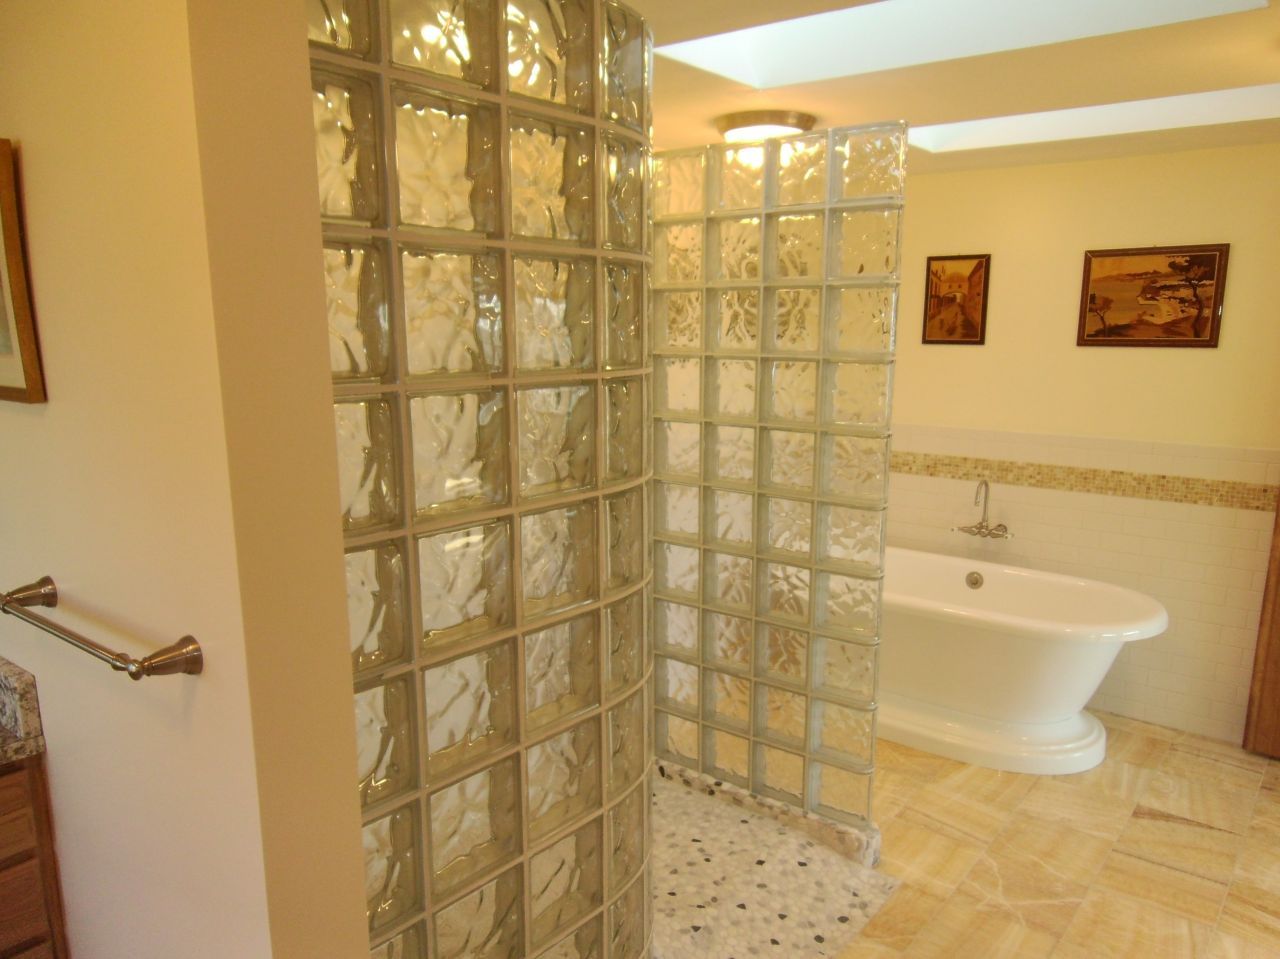 Bathroom Remodeling Leads Remodeling Space Over A Garage Larger Master Bathroom New Harbor Maine